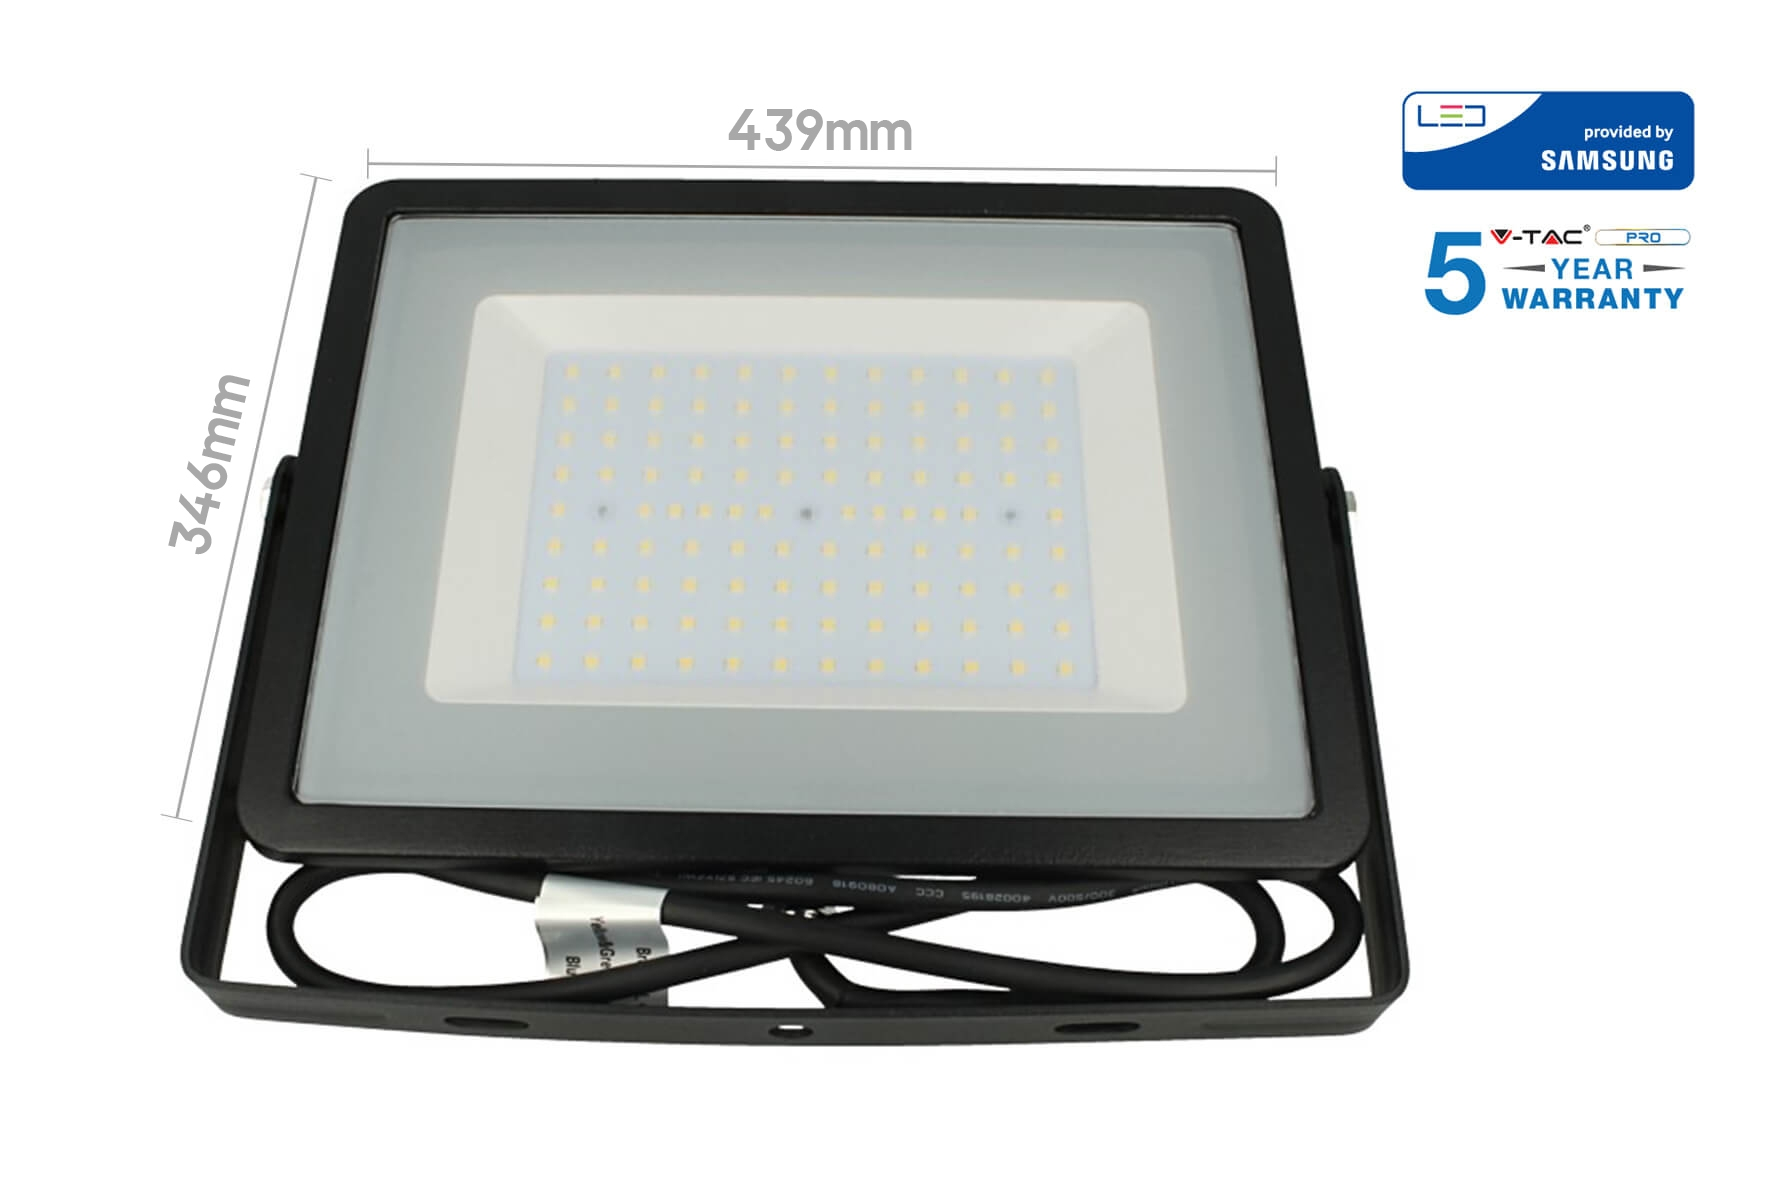 Faro Led Flood Light 200W IP65 Bianco Neutro Super Slim 56mm Carcassa Nera Samsung Garanzia 5 Anni SKU-418 - KIT